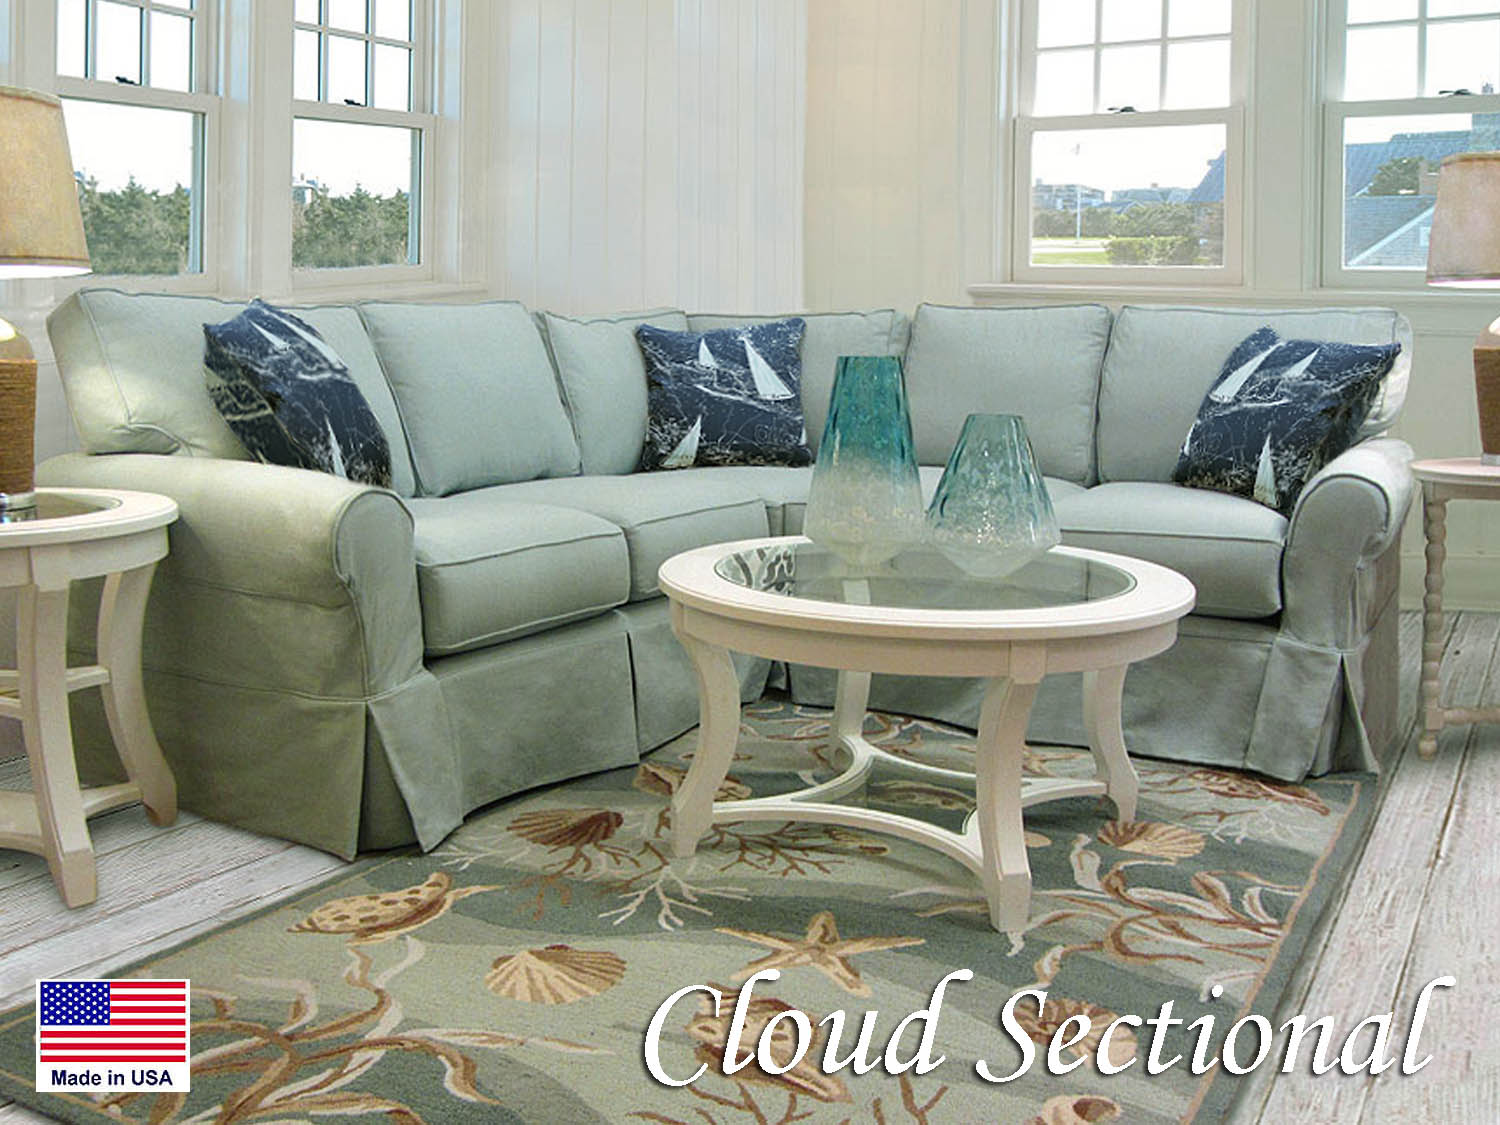 Barbo's Furniture, Cloud, Slipcovered, Sectional, Sofa, Loveseat, Living Room, Family Room, Den, Chair, Ottoman, Queen, Full, Twin, Sleeper, Coastal, Seaside, Cape Cod, Casual, Cottage, Fabric